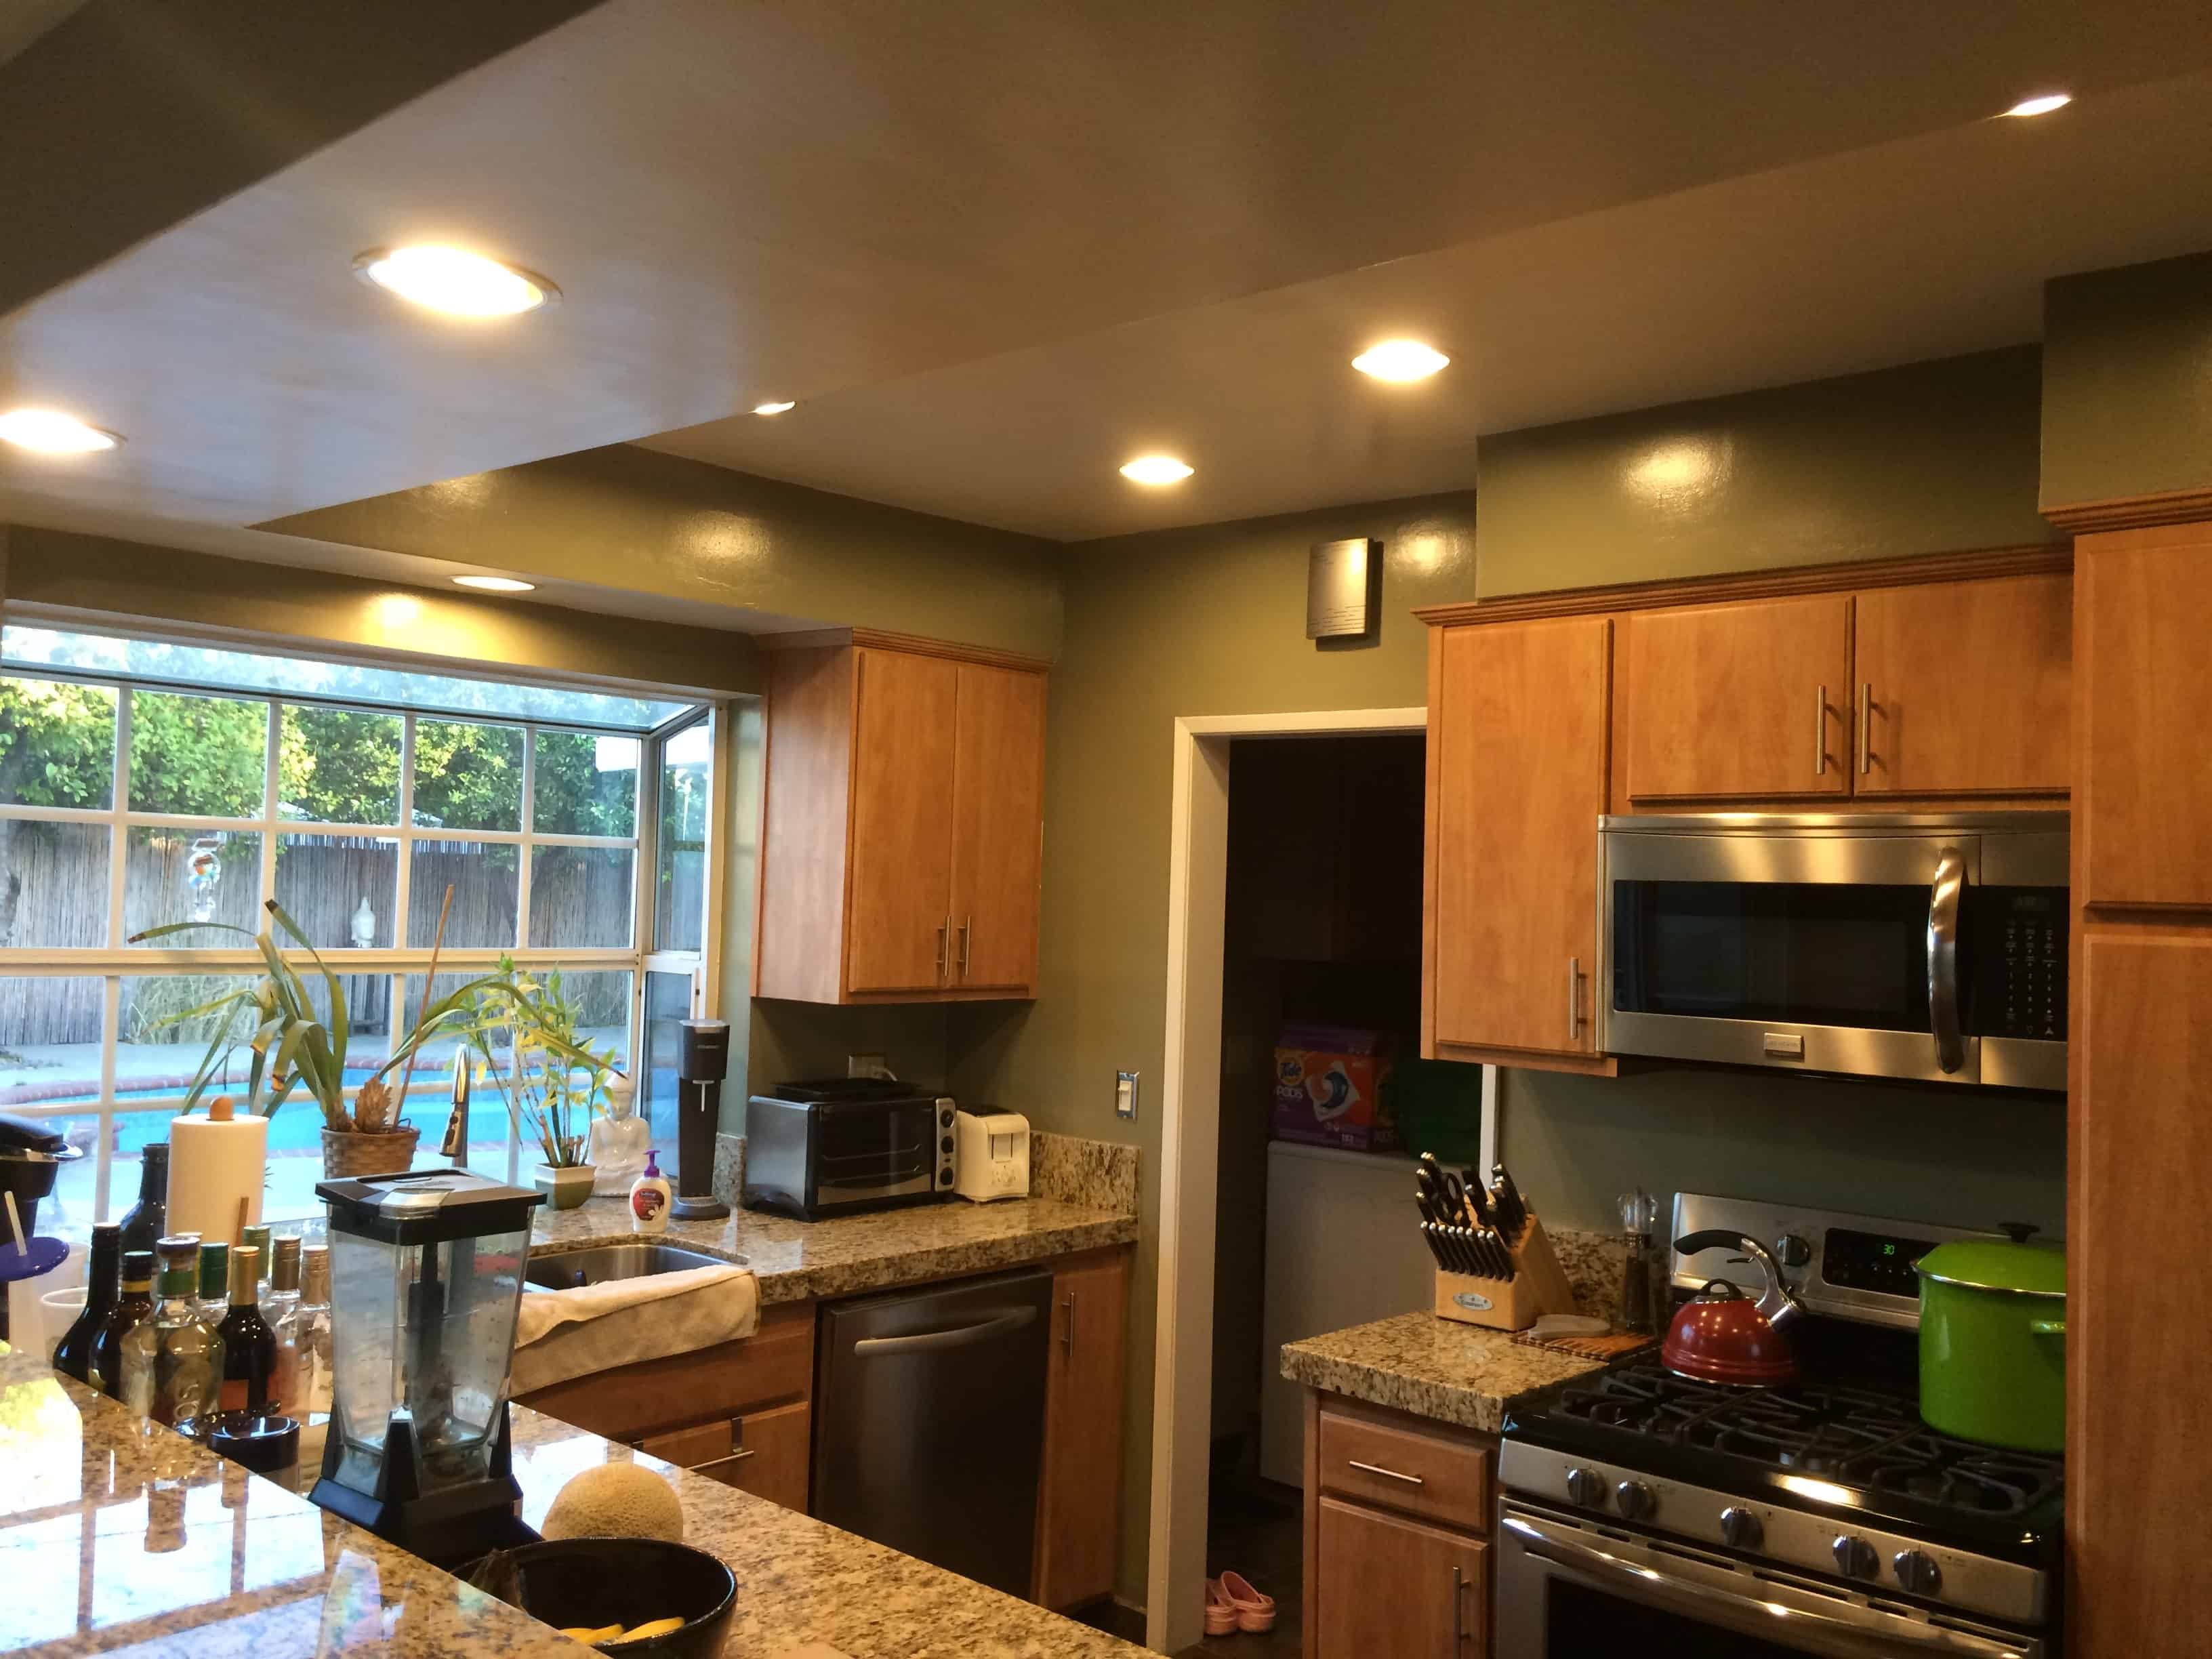 Great Ways For Lighting A Kitchen: Best Ways To Lower Your Electric Bill: Use LED Light Bulbs